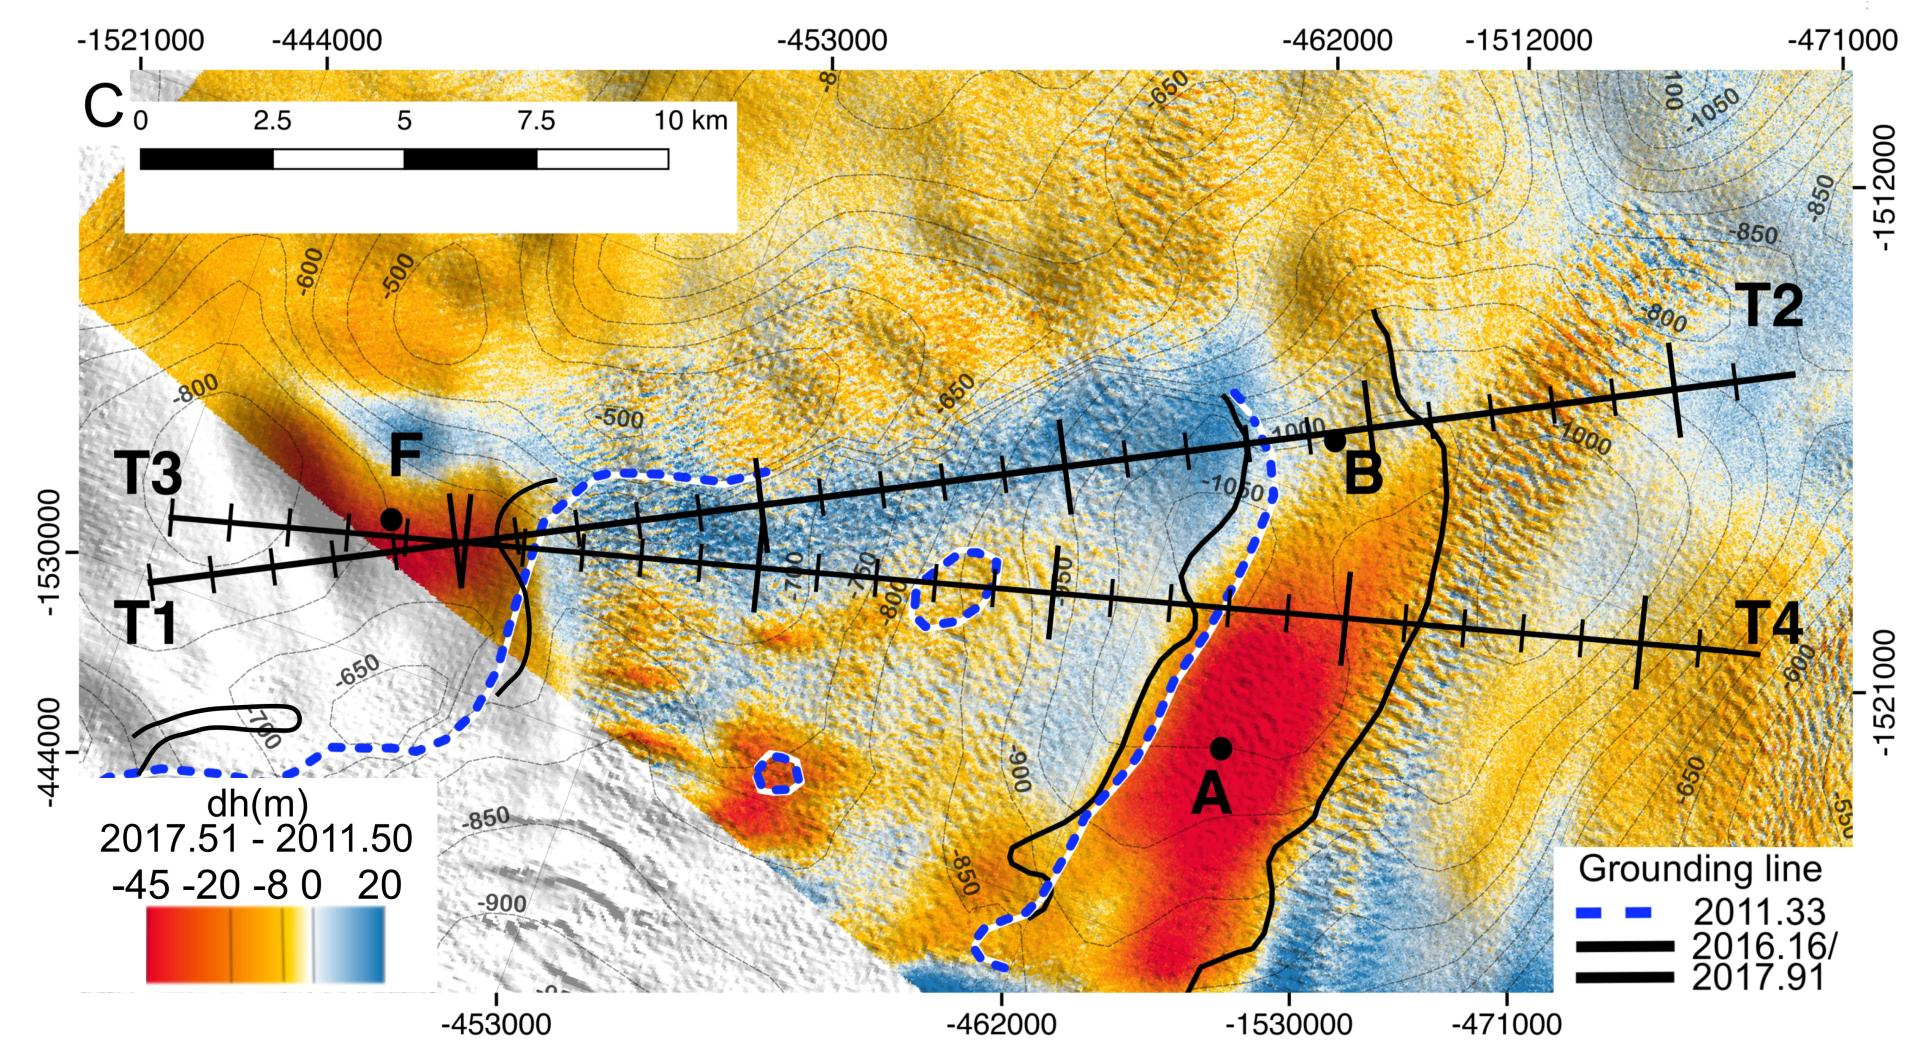 Elevation changes of the glacier surface